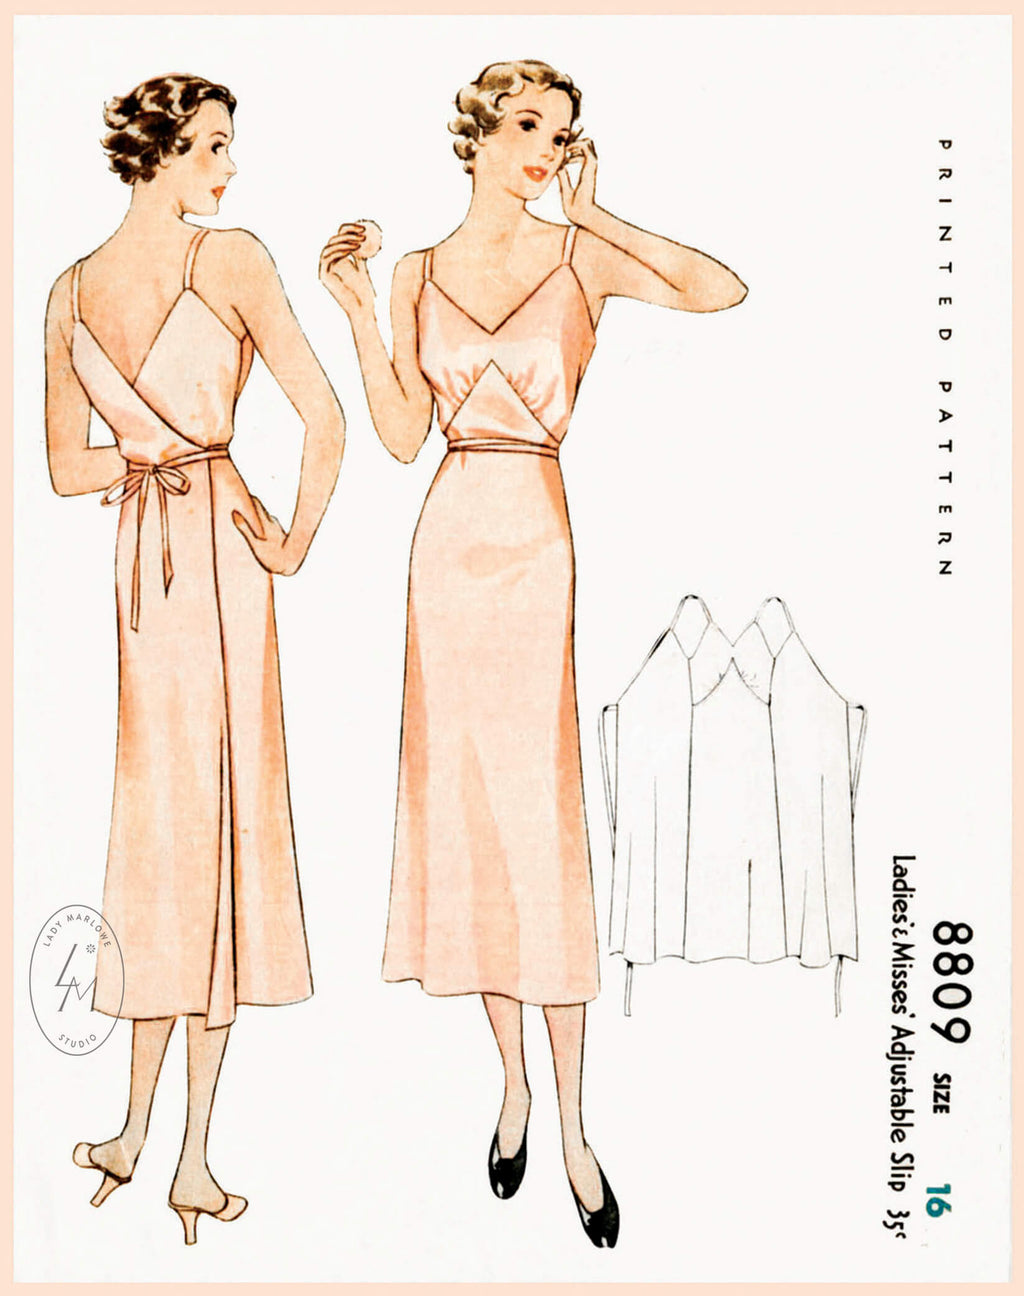 McCall 8809 1930s wrap slip dress vintage lingerie sewing pattern